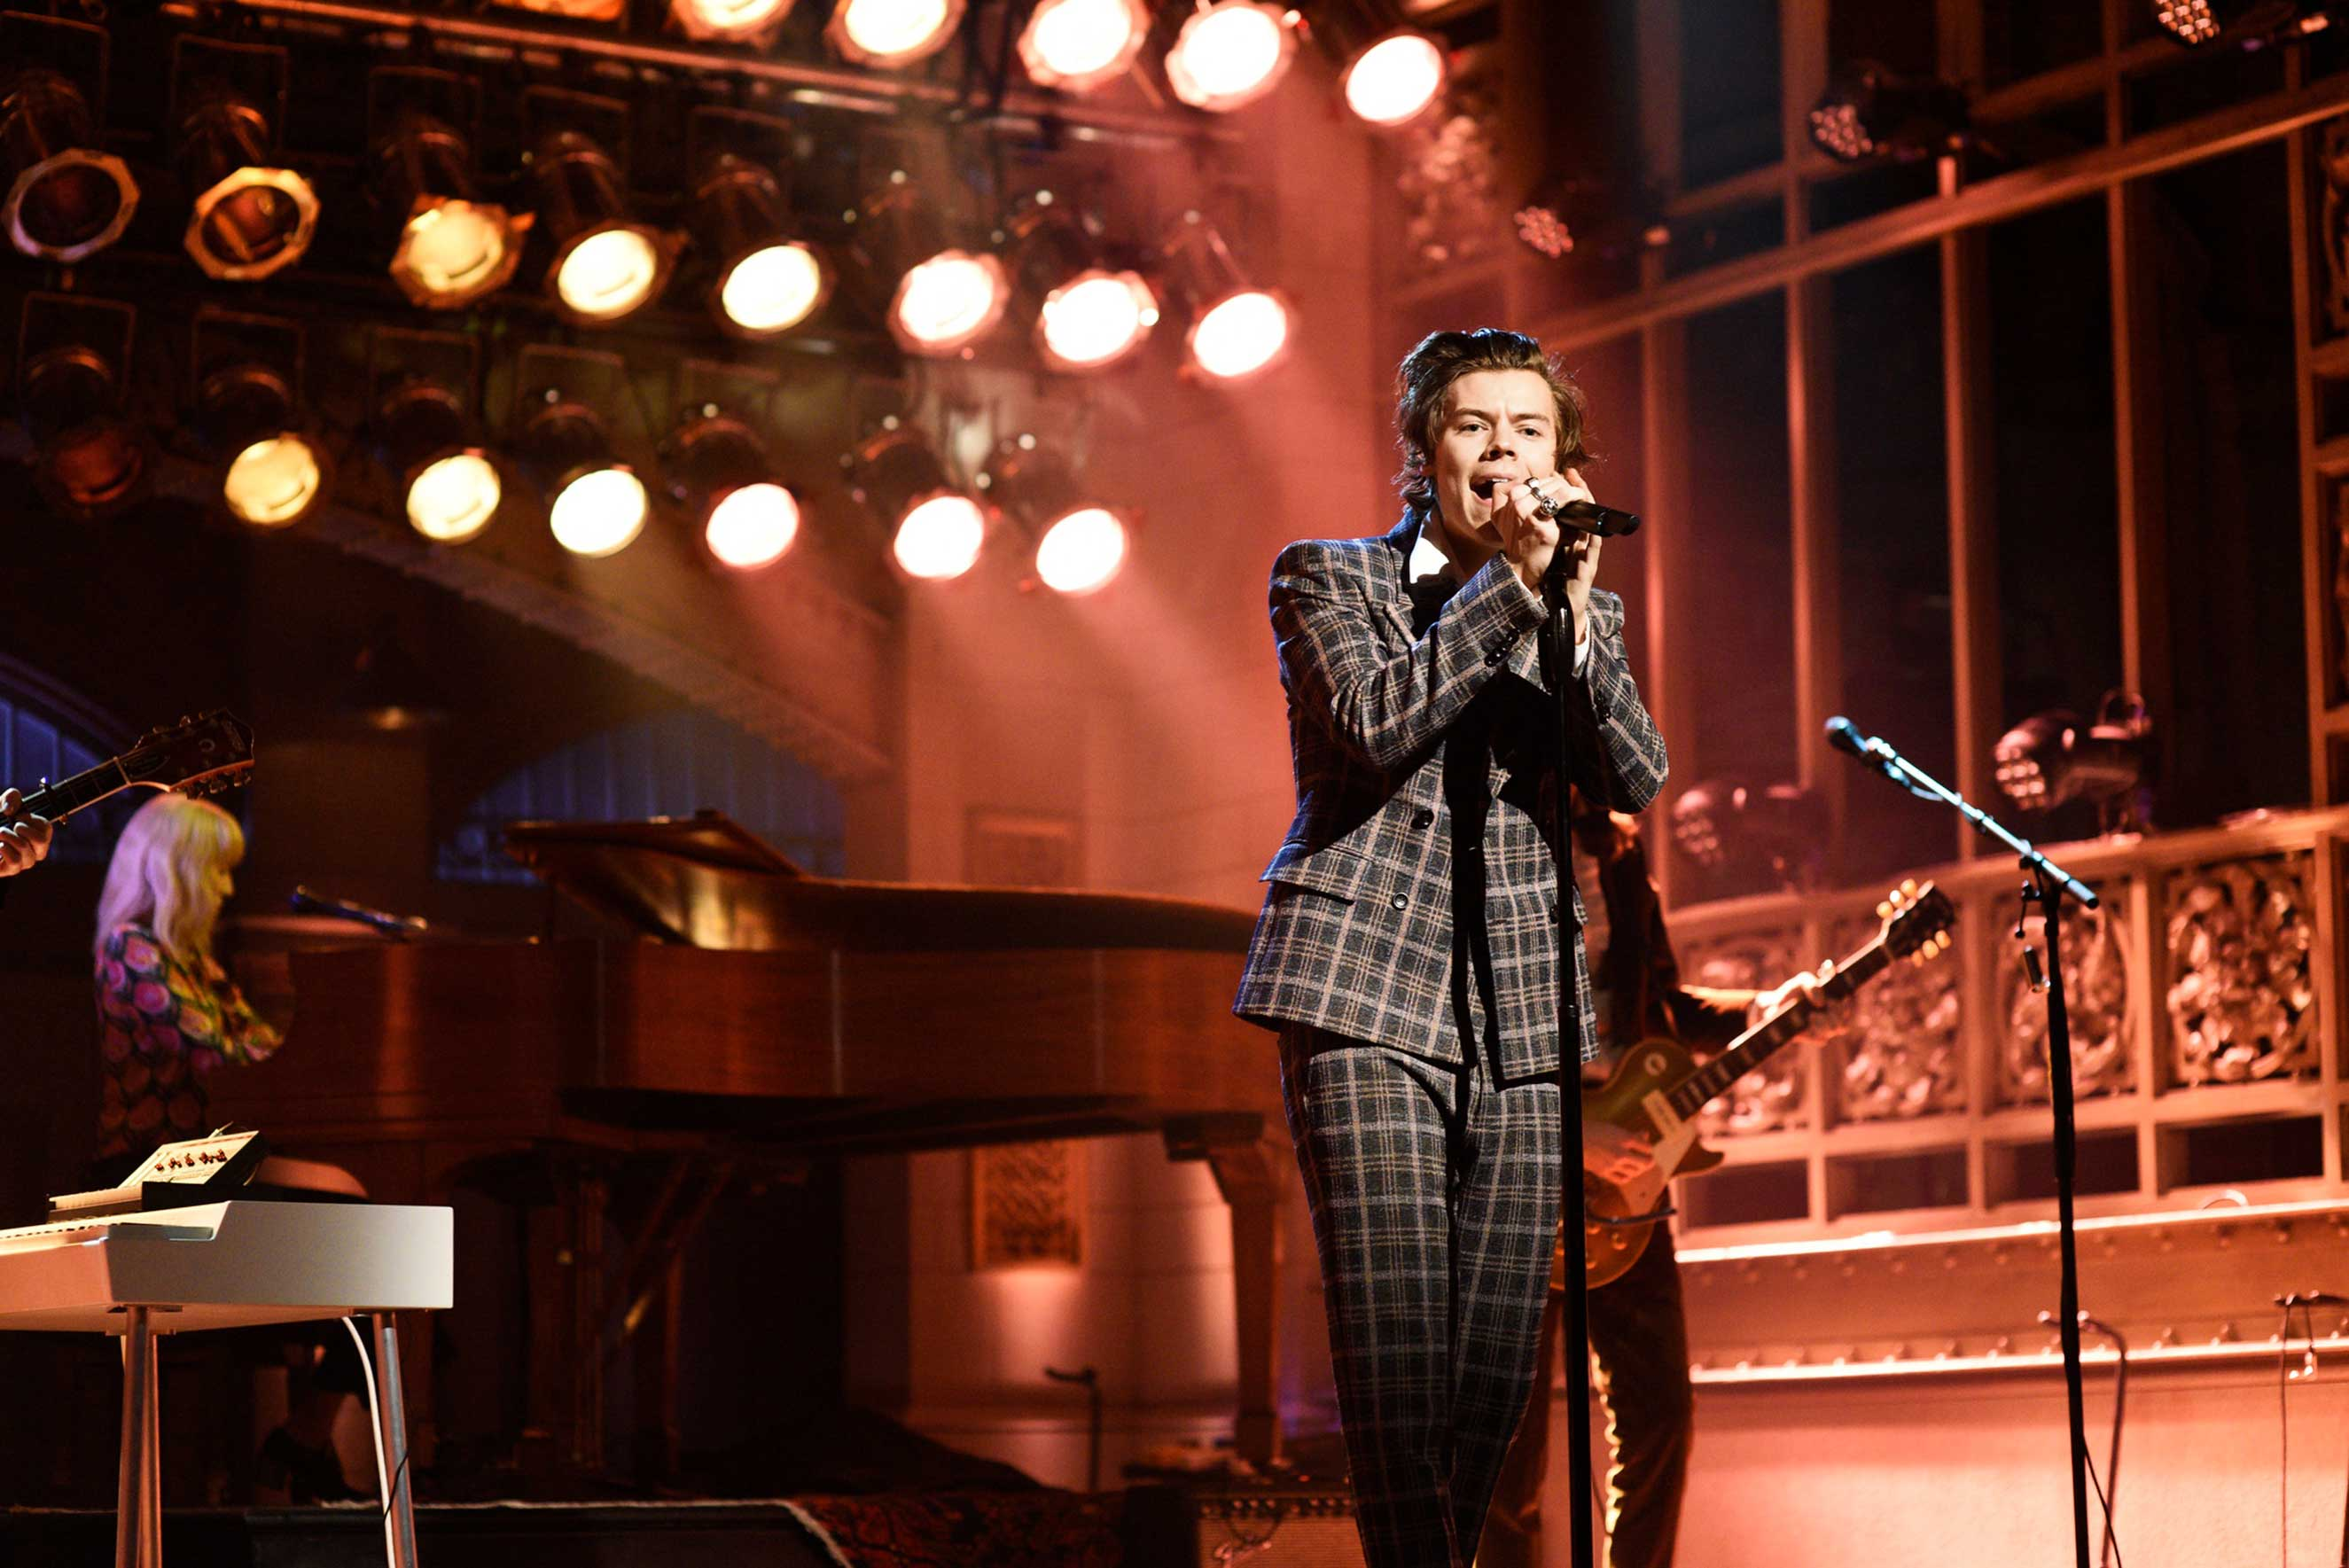 Harry Styles performs  Sign of the Times  on Saturday Night Live in New York City, April 15, 2017